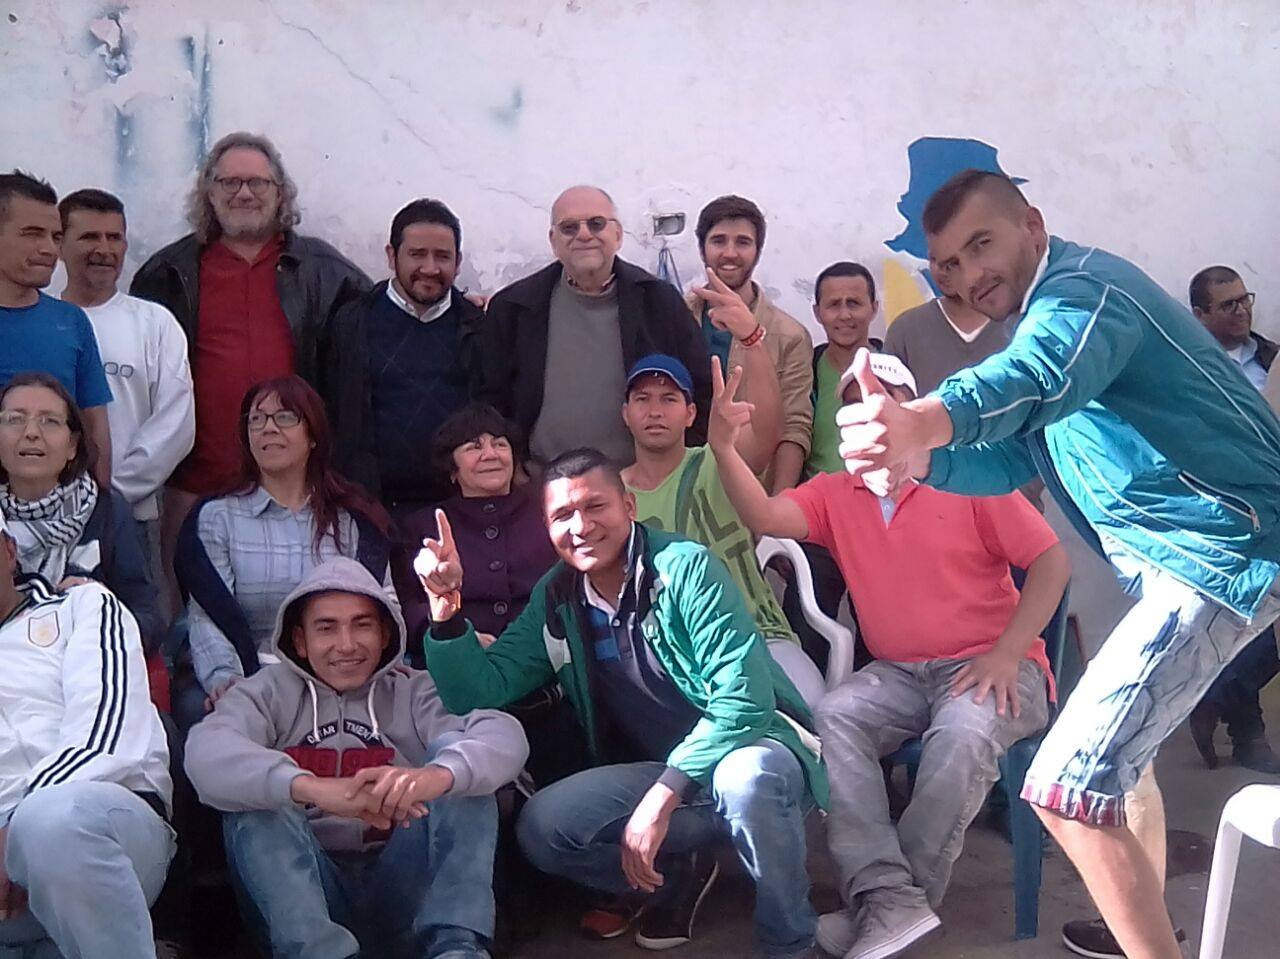 At the Chiquinquirá Prison with the FARC-EP political prisoners